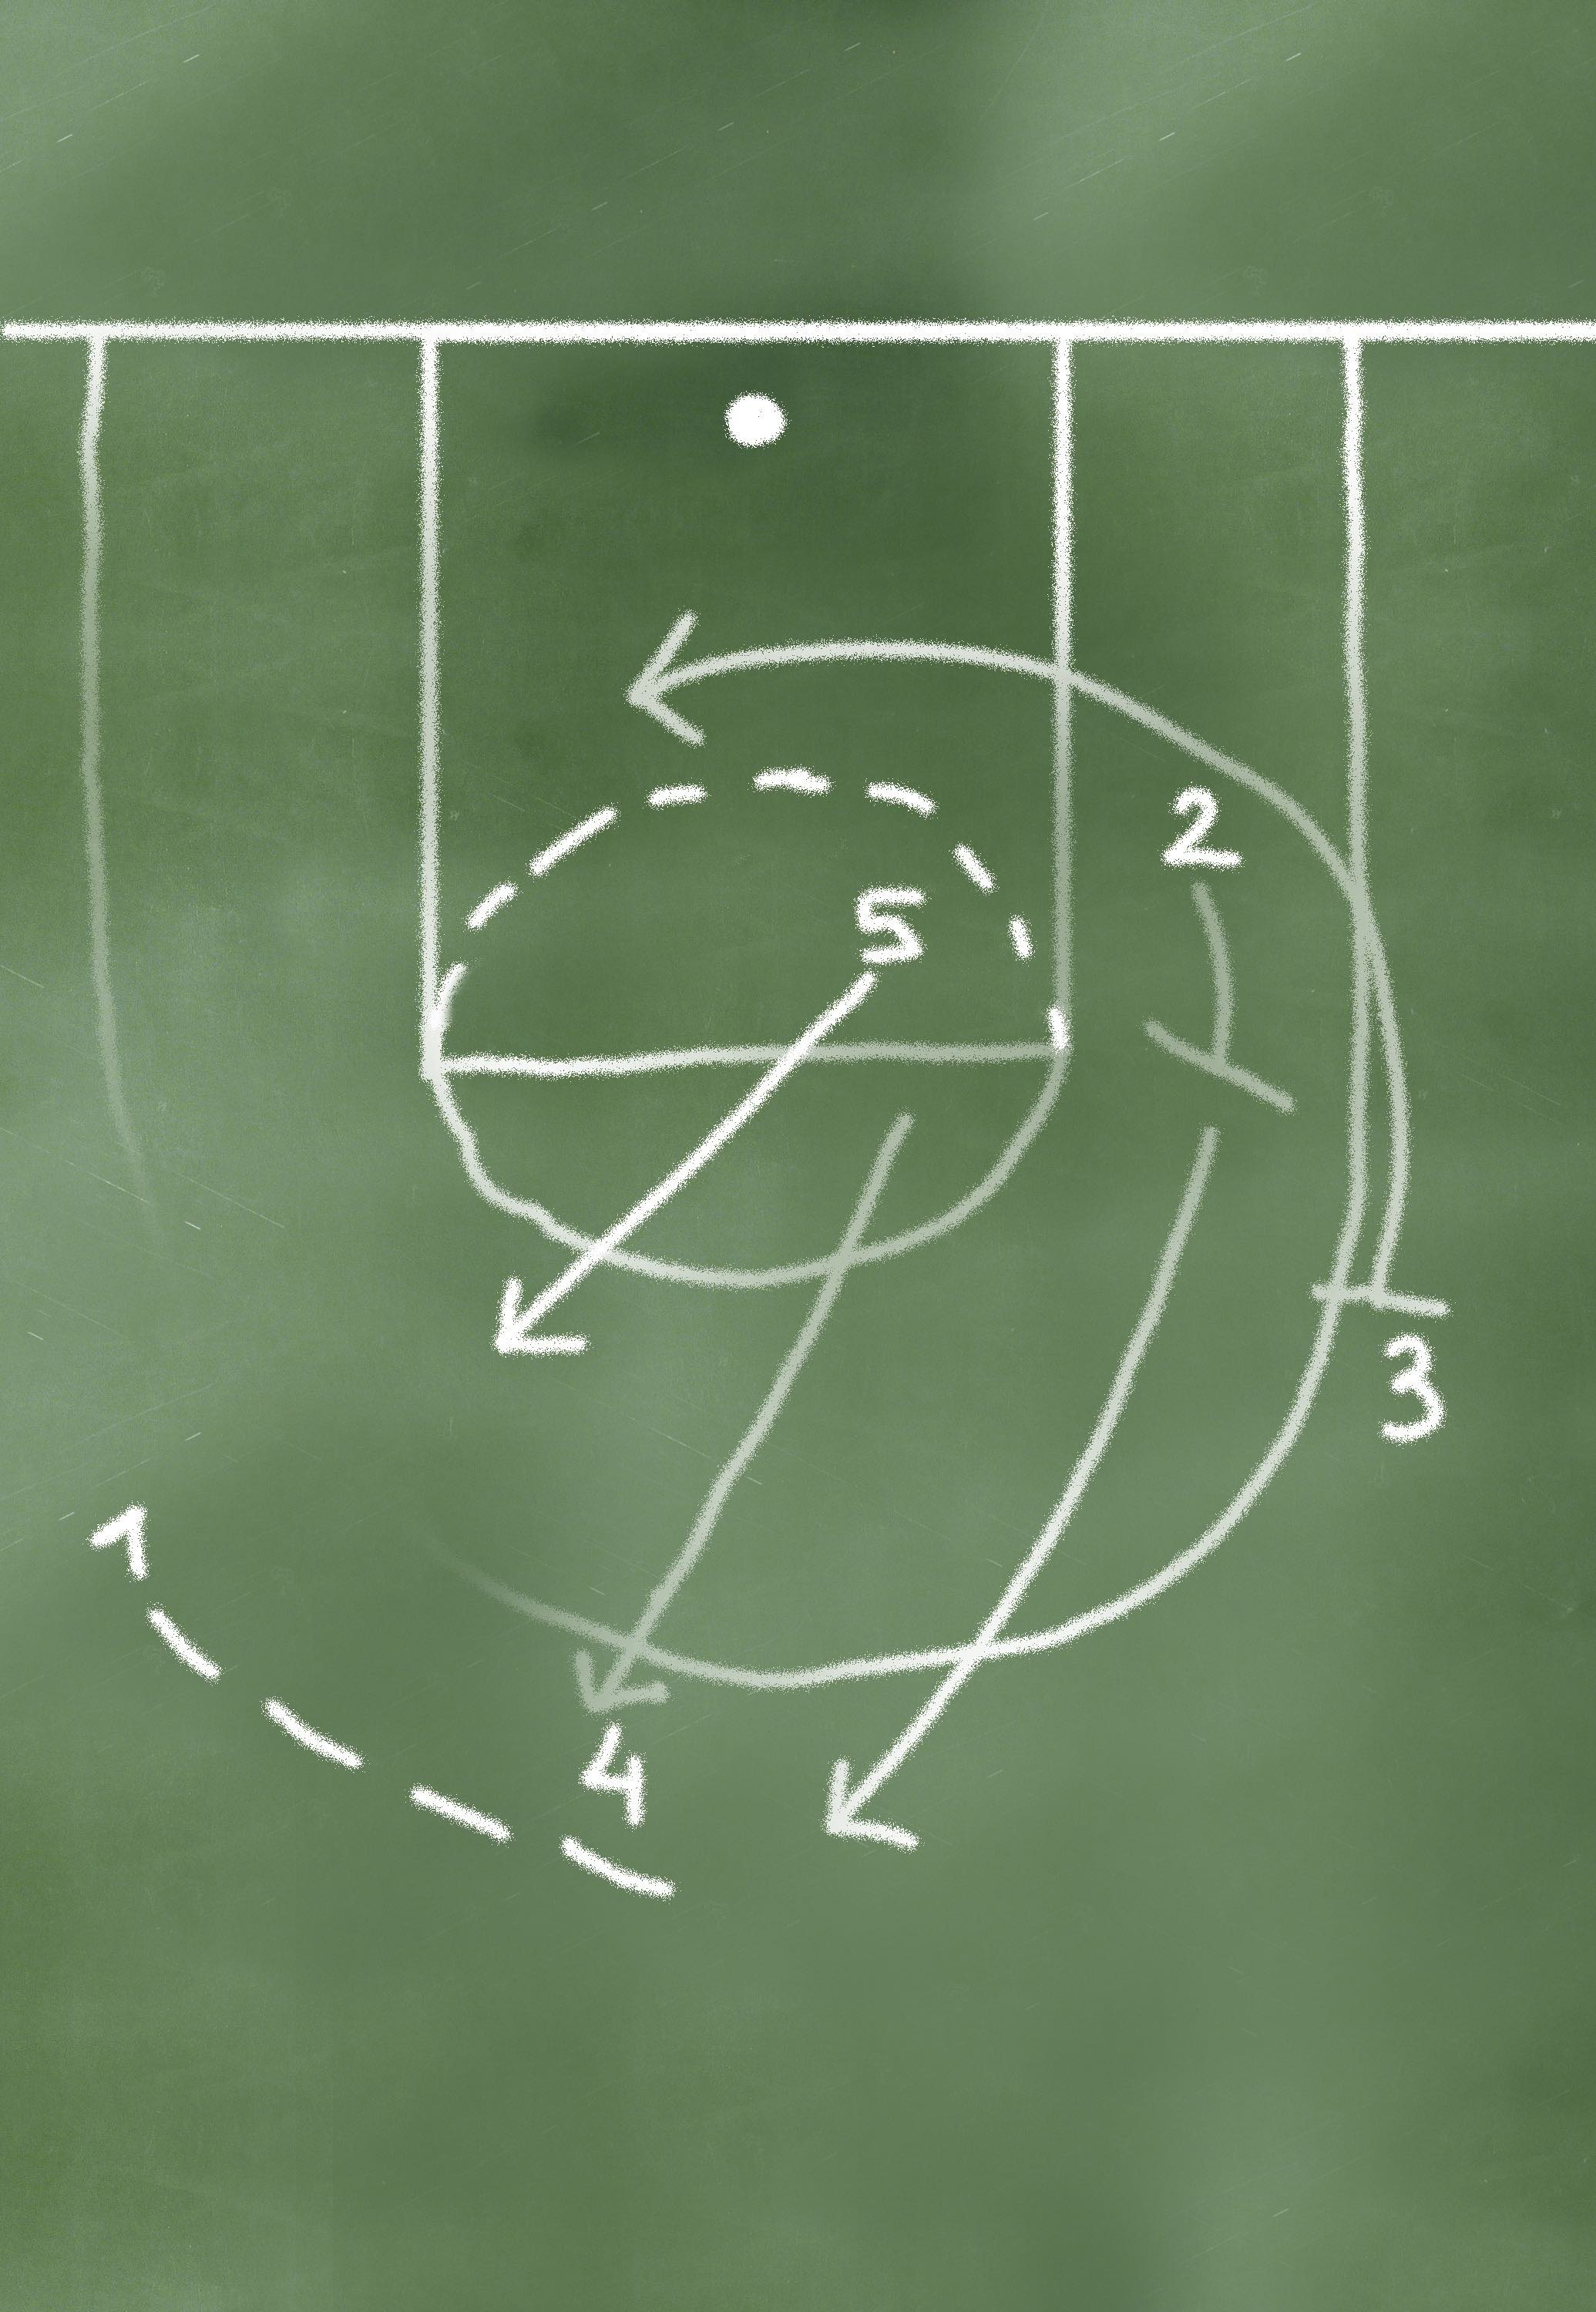 Basketball Chalk game plan on greenboard  made in 2d software